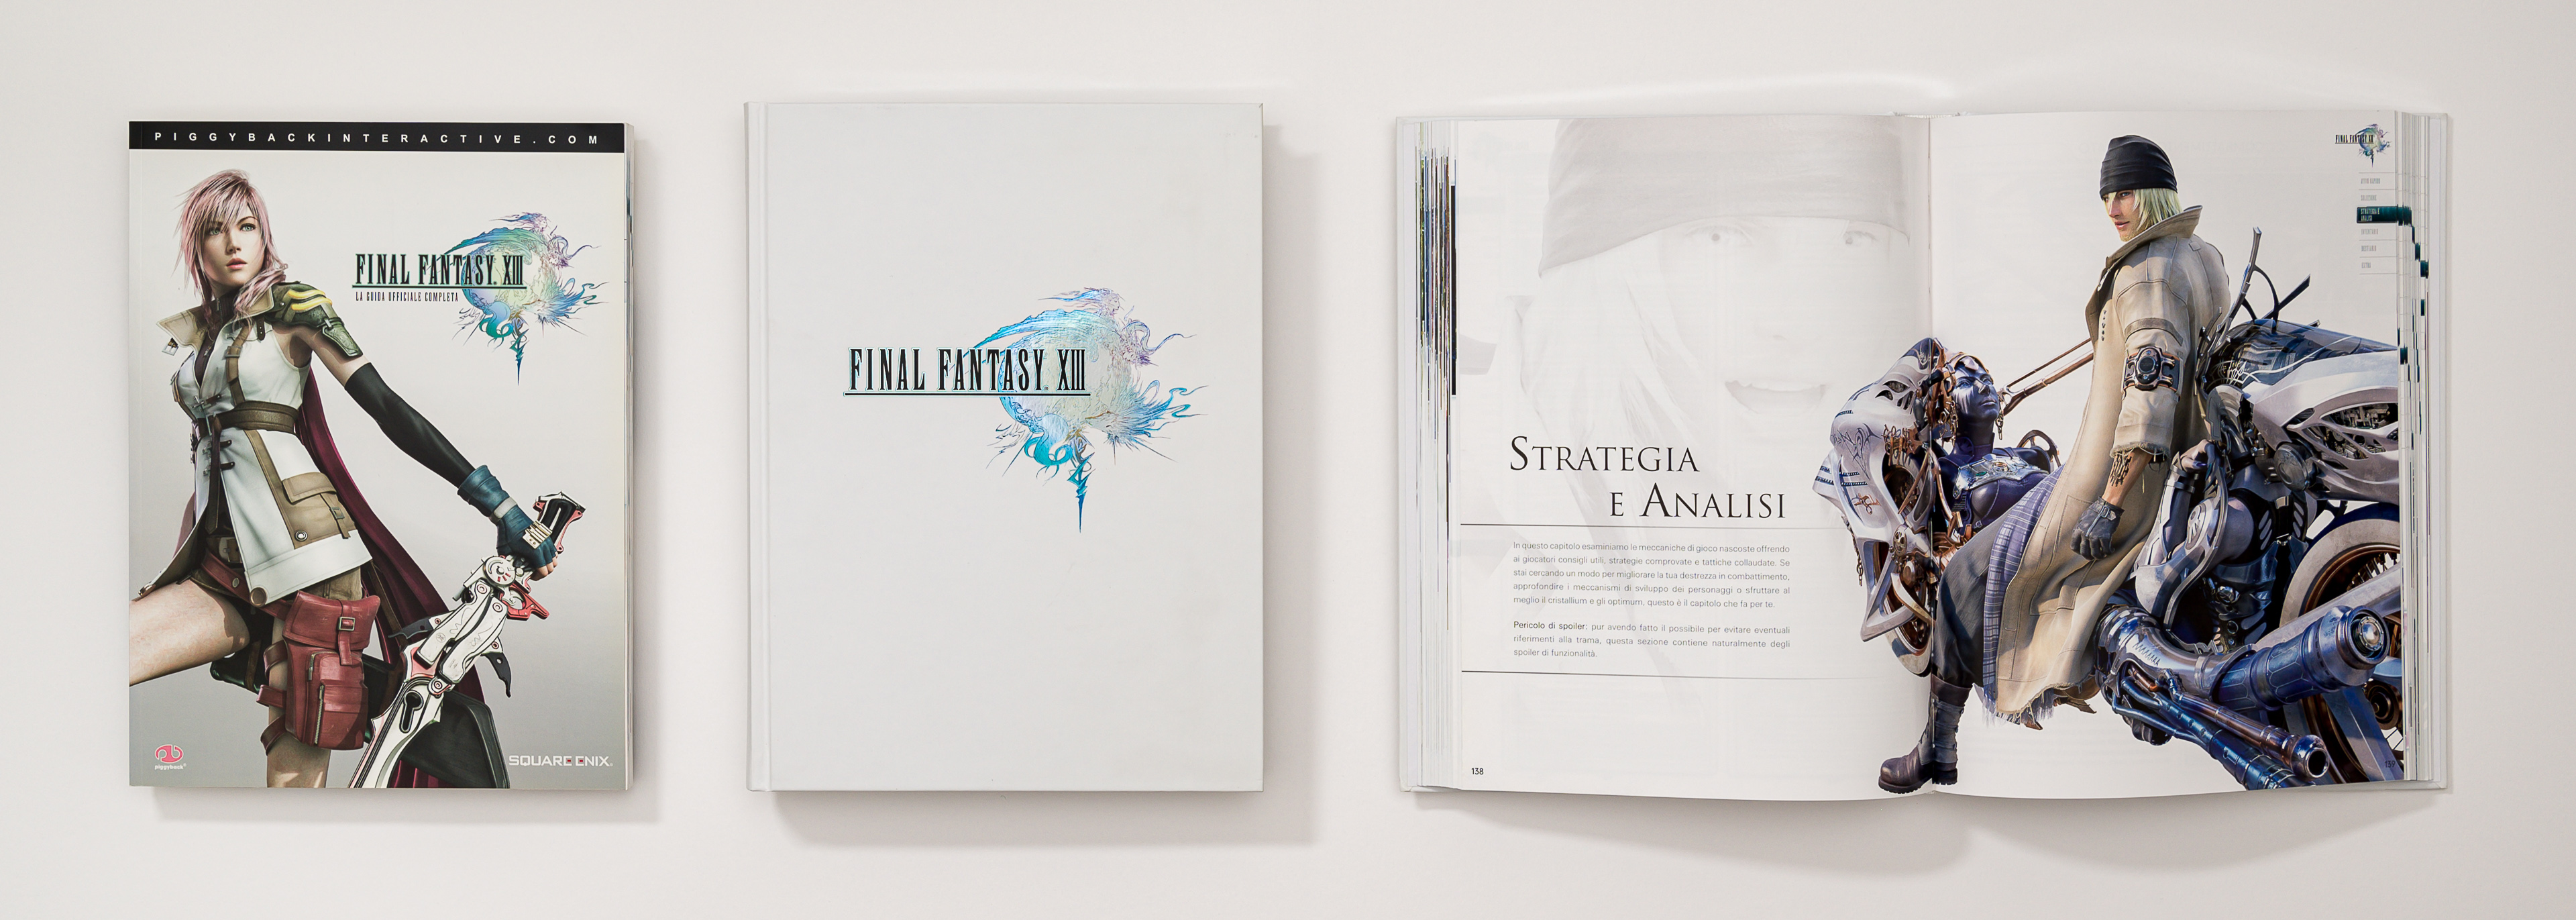 FFXIII_I_GUIDE-COLLAGE